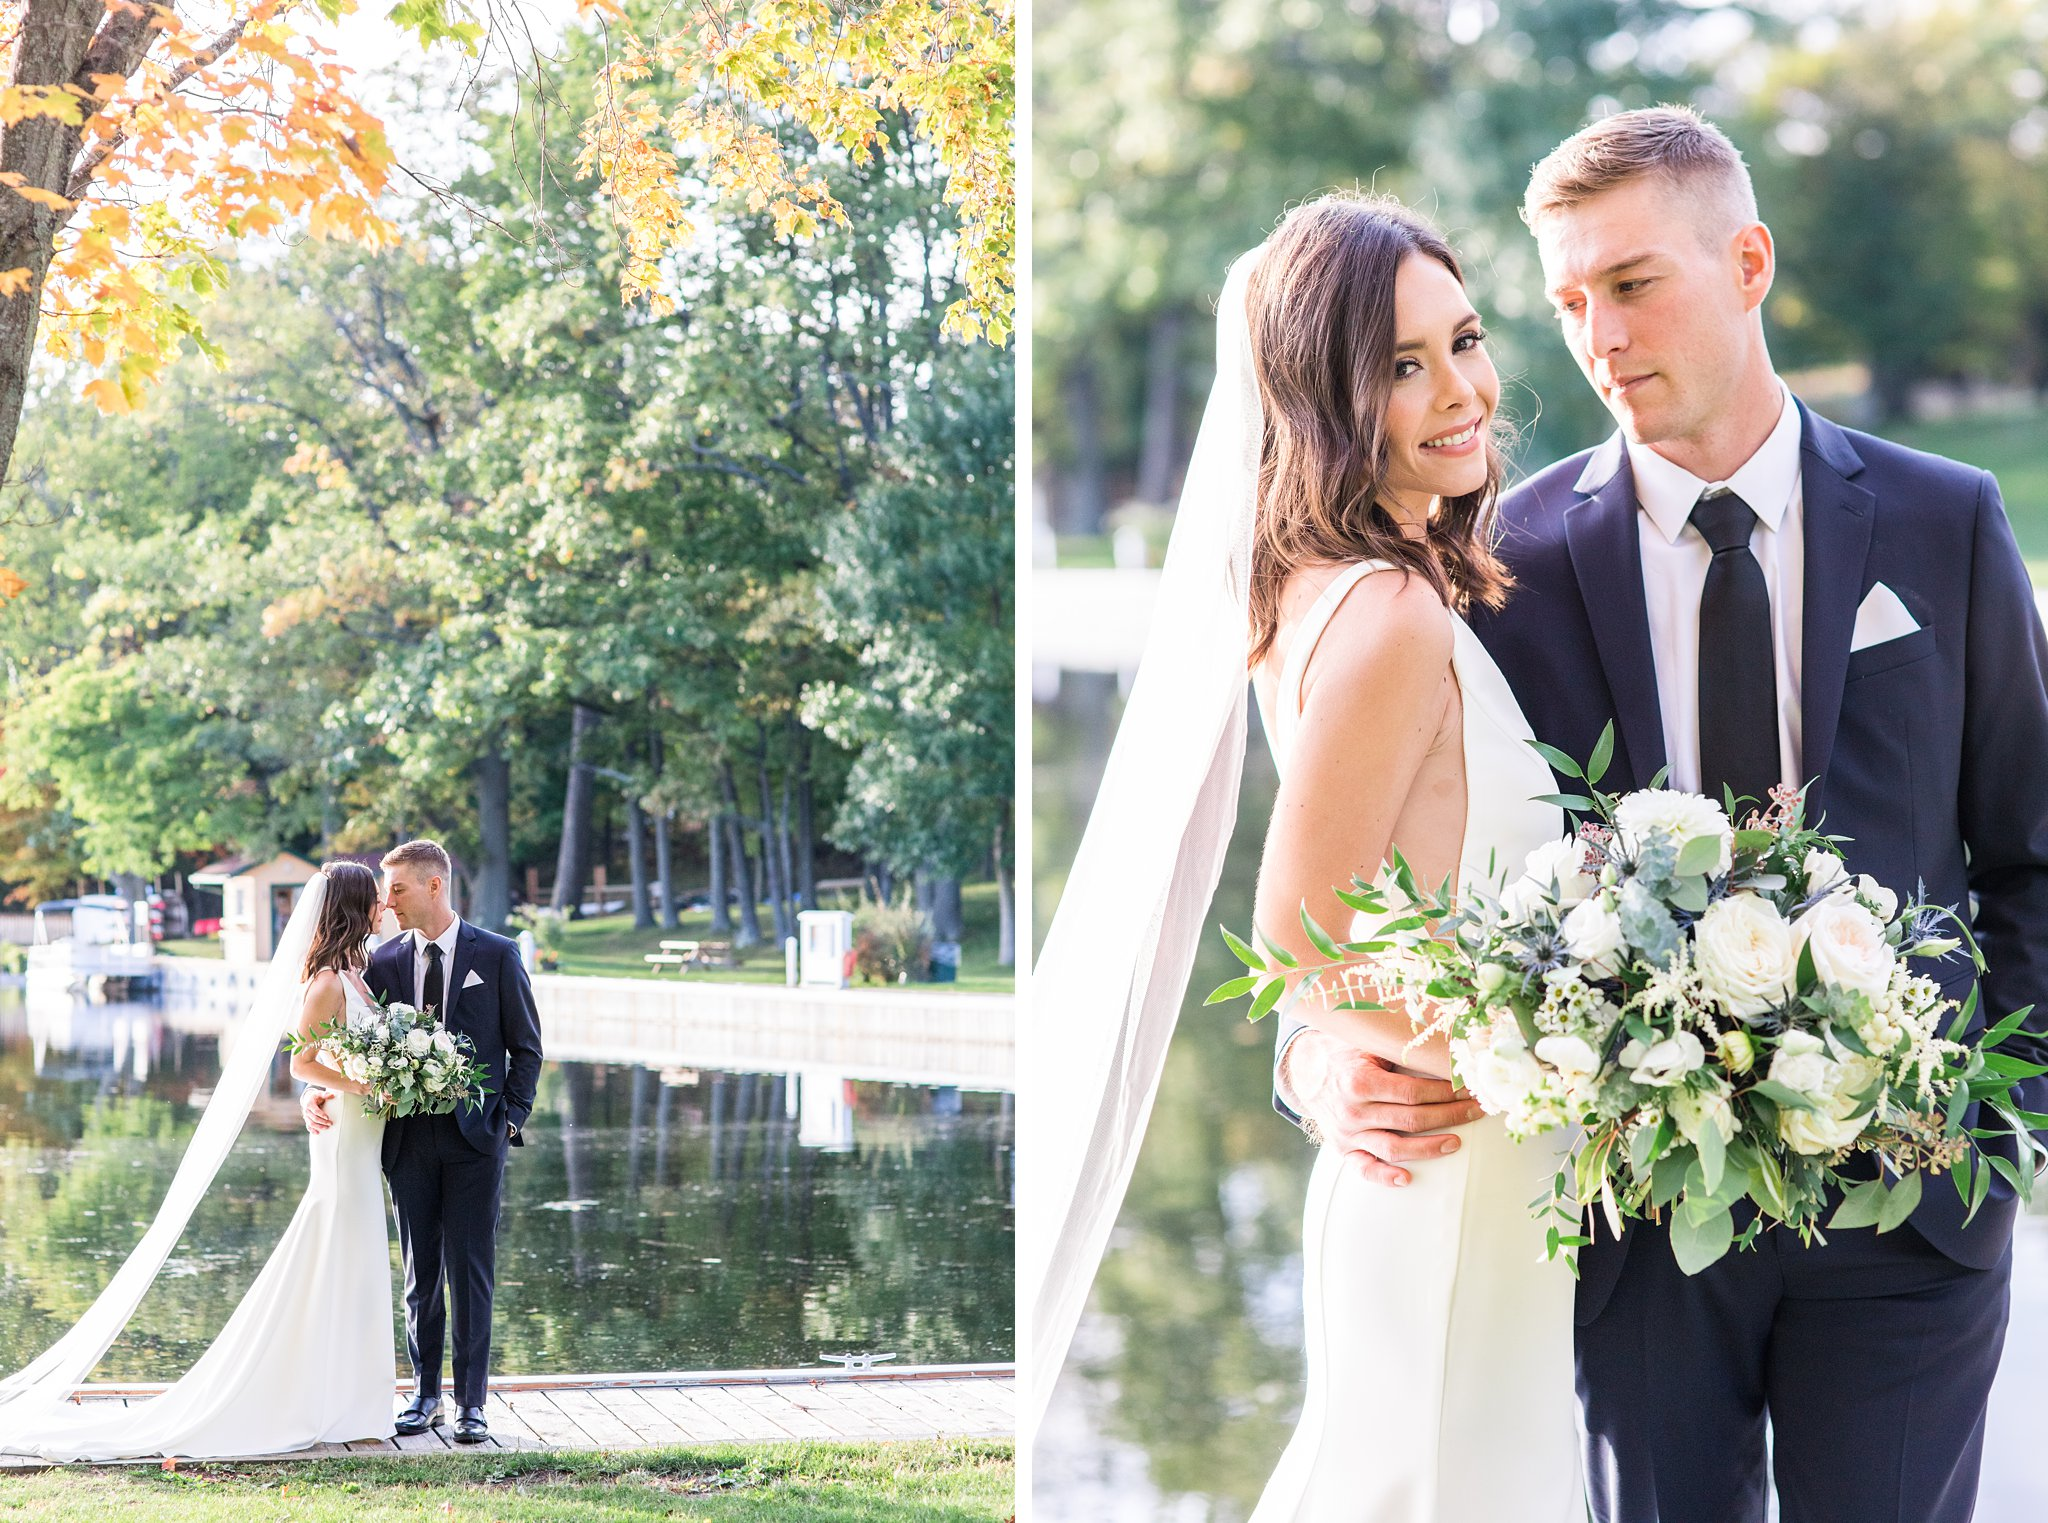 Bride and groom photos on the Rideau River, Opinicon Wedding Photos by Amy Pinder Photography